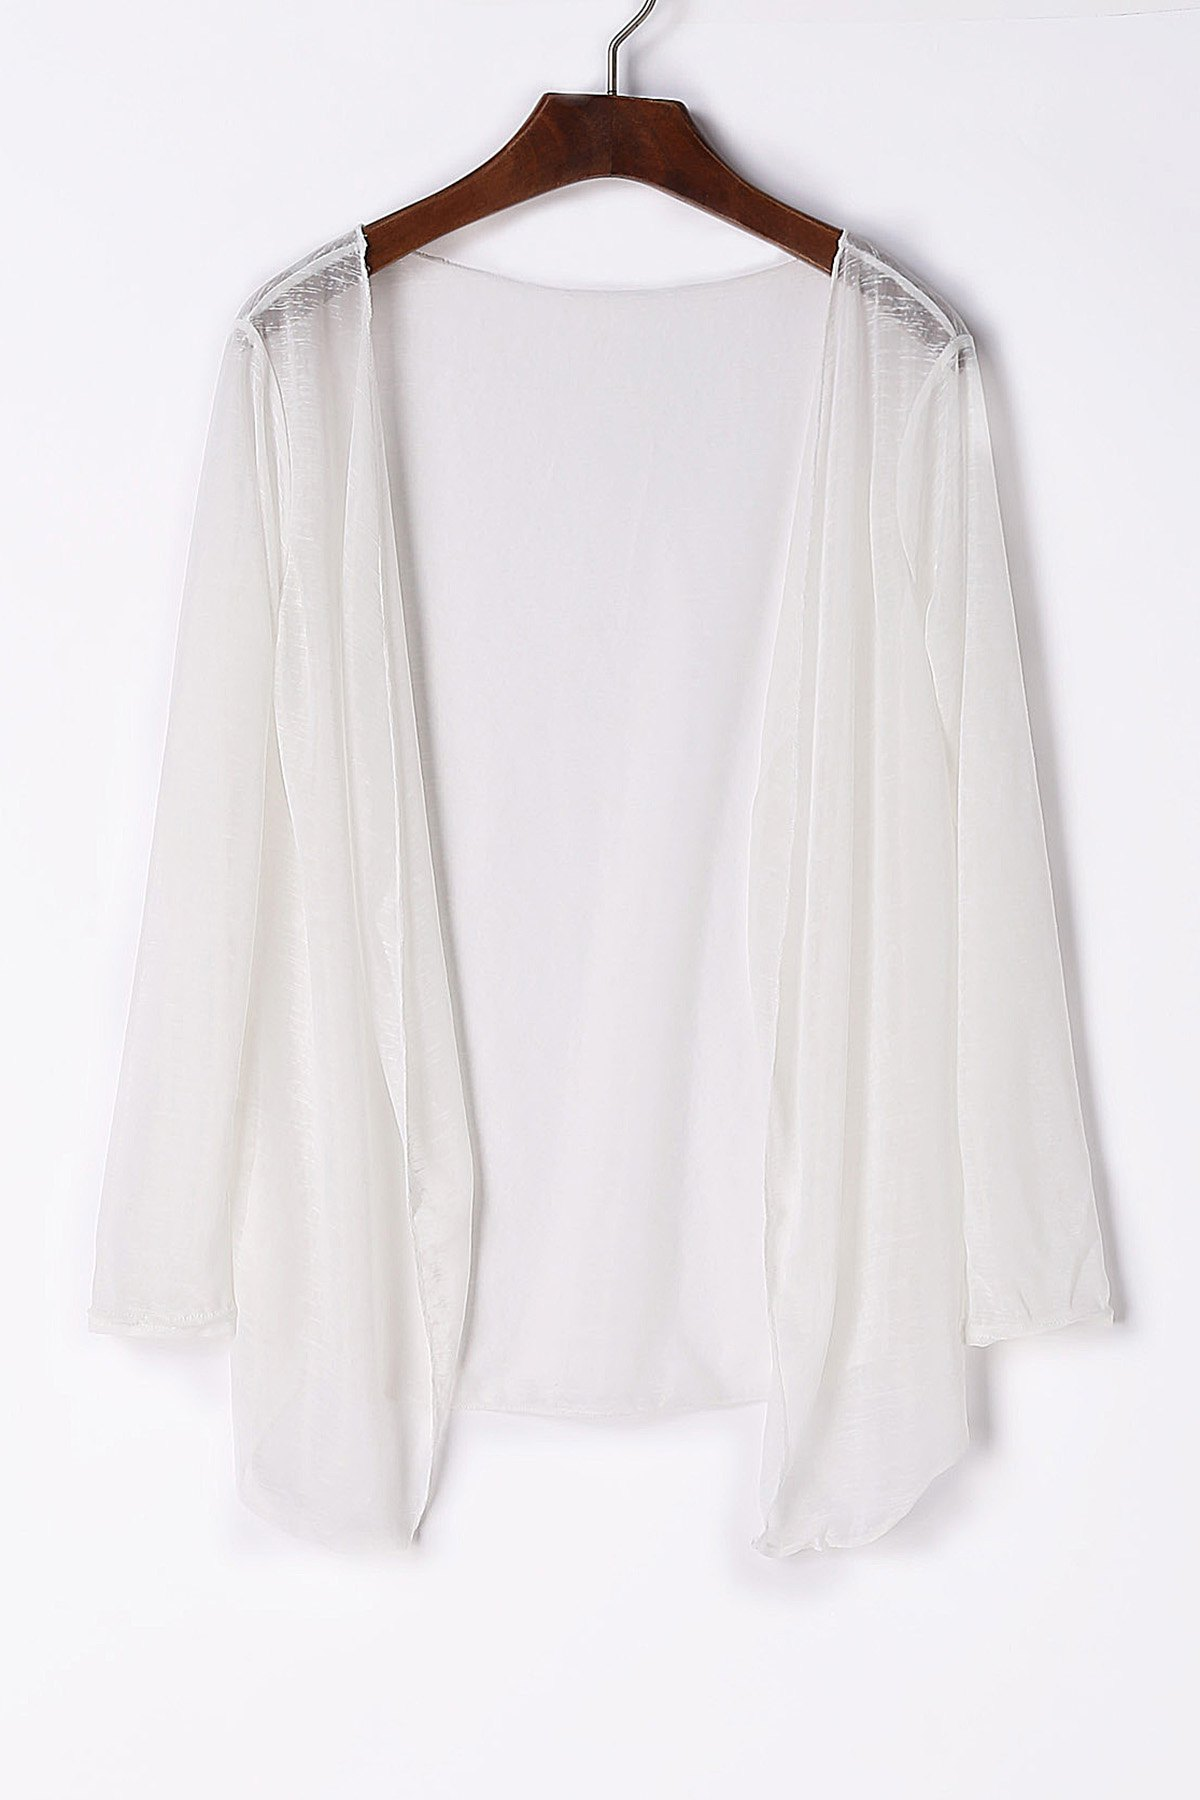 Brief Women's Collarless Candy Color Long Sleeve Cardigan - WHITE S